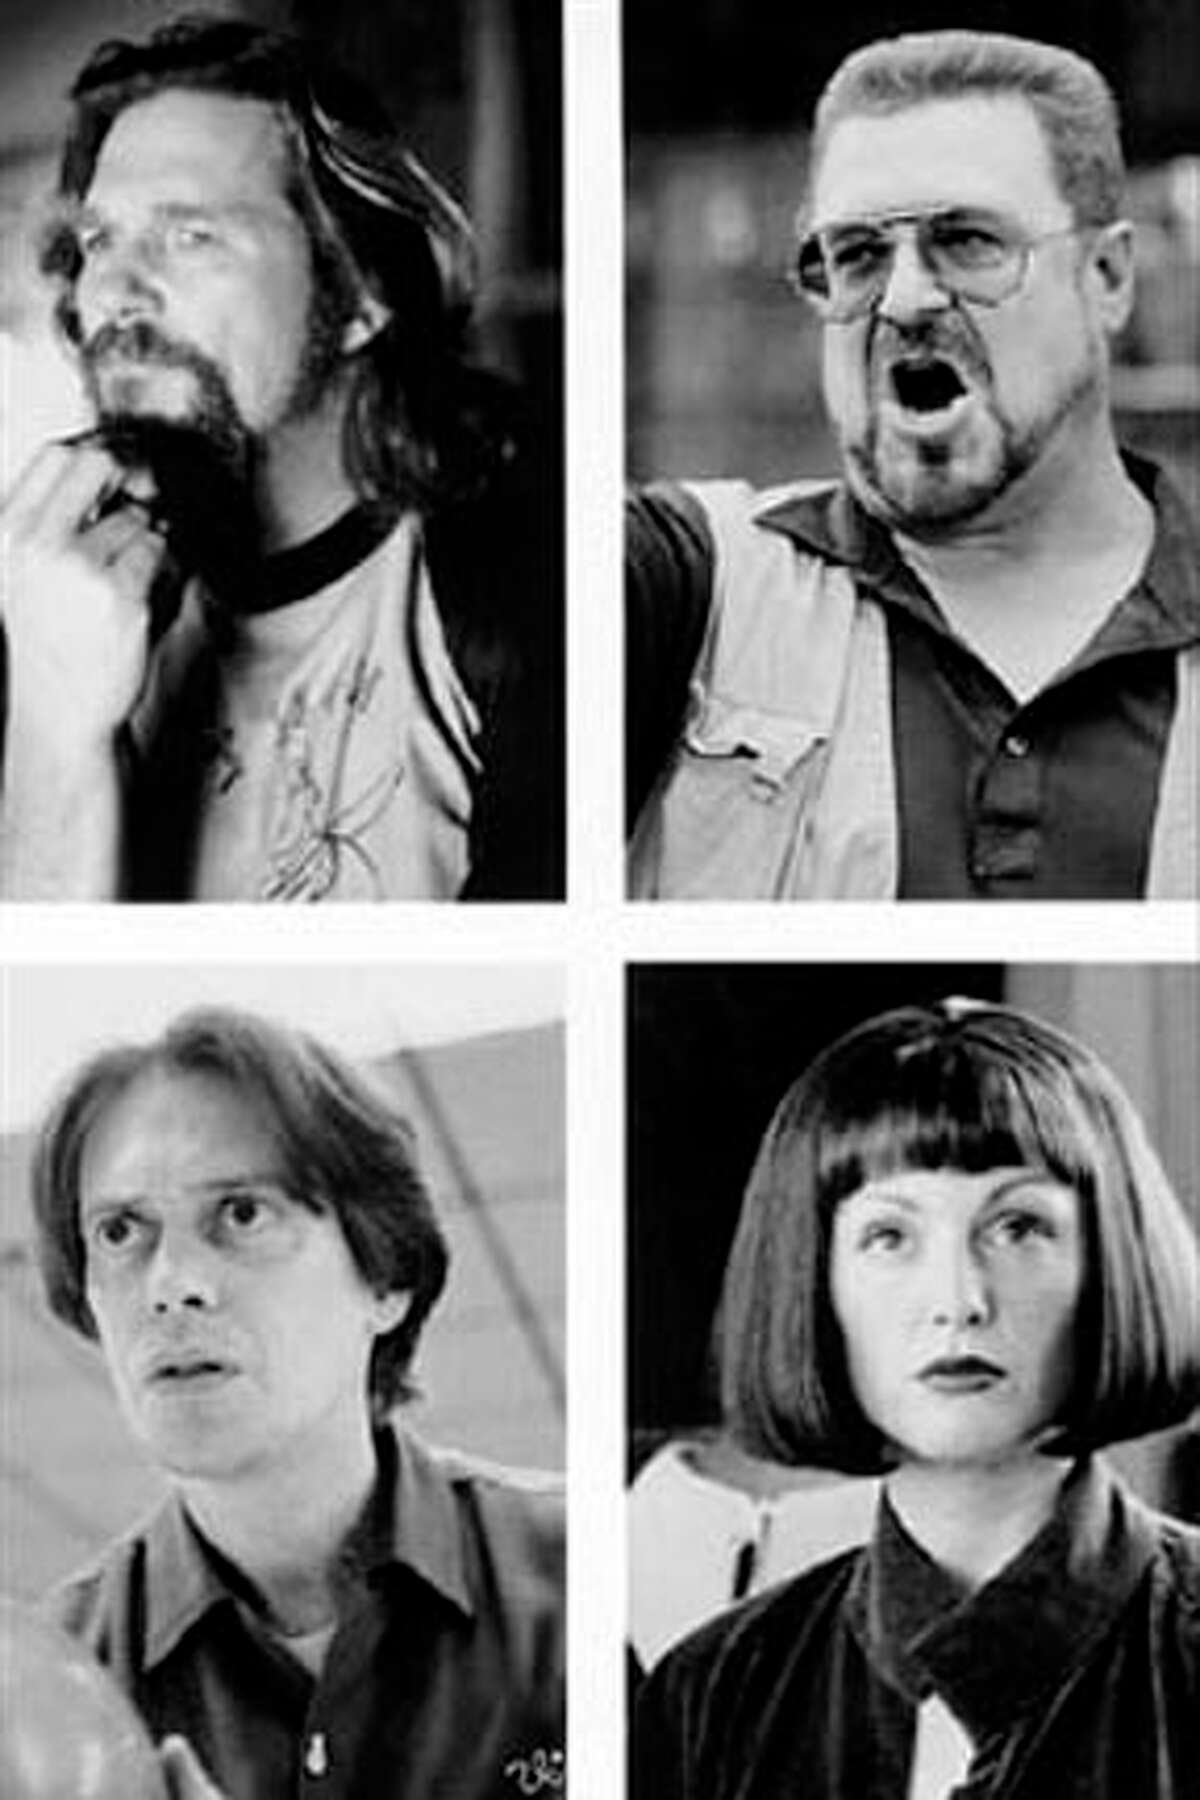 (Top left) JEFF BRIDGES stars as The Dude, (top right) JOHN GOODMAN is bowler Walter, (bottom left) STEVE BUSCEMI as Donny and (bottom right) JULIANNE MOORE as artist Maude.